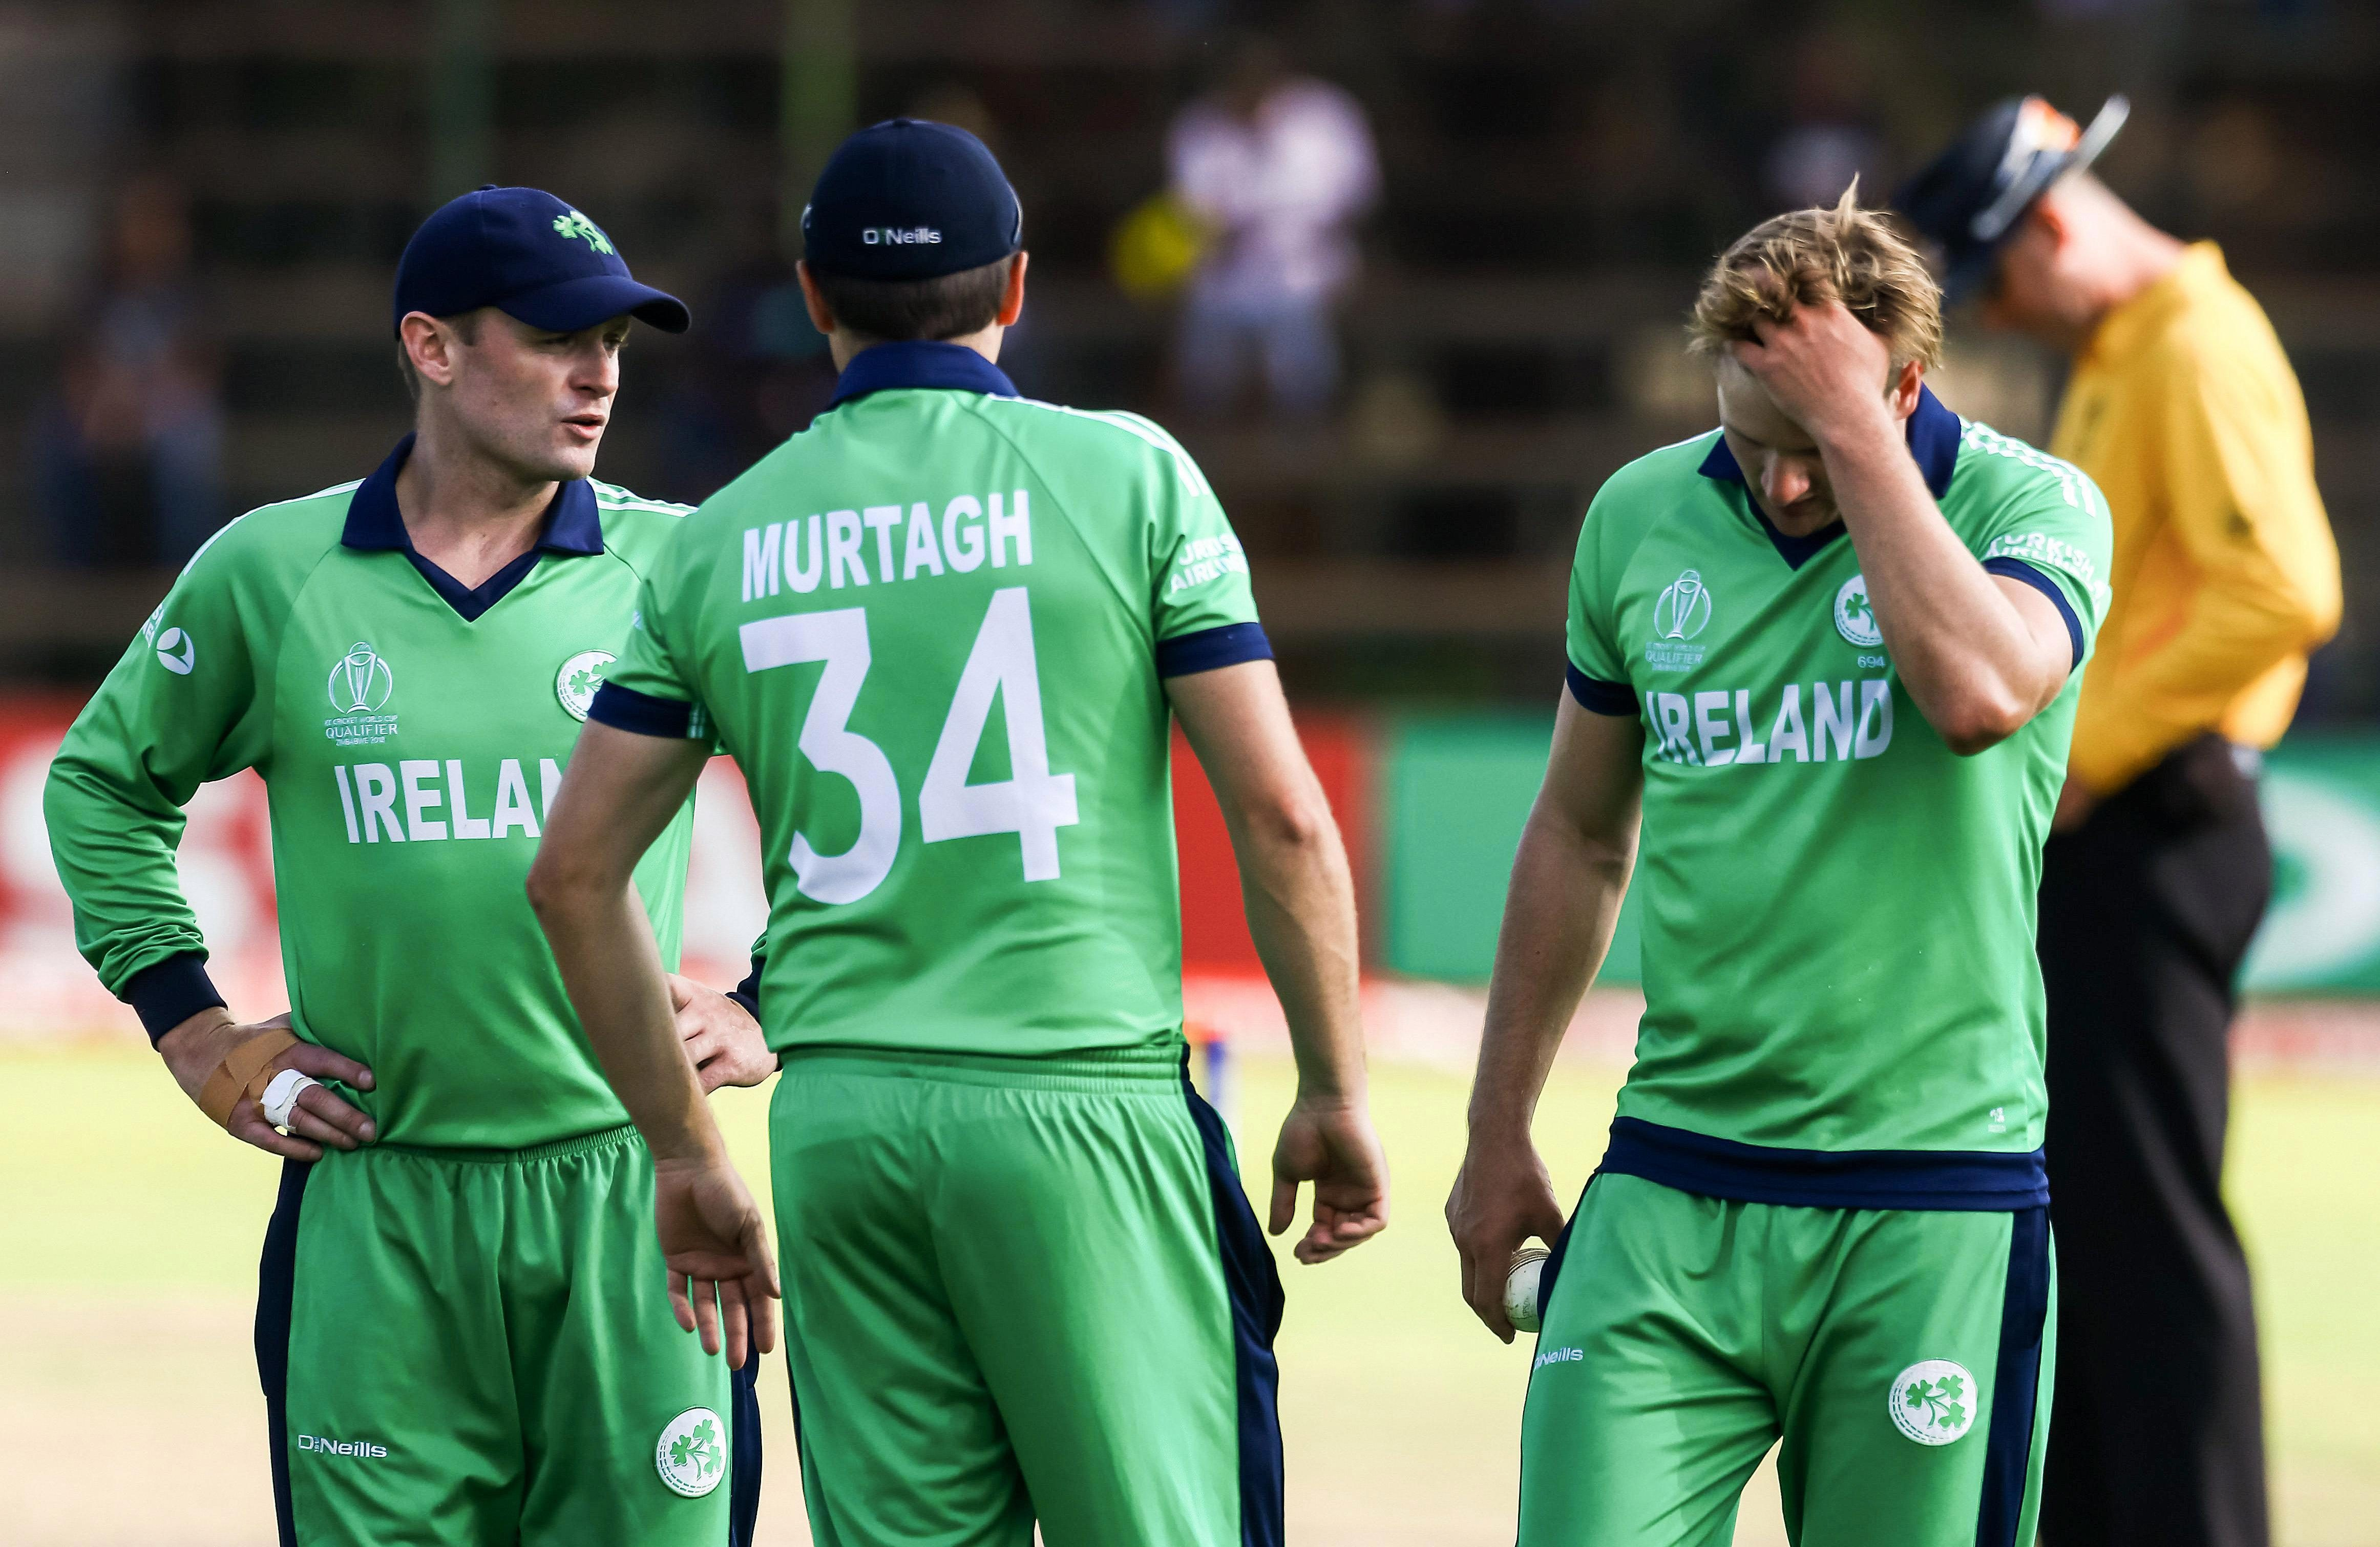 Ireland failed to qualify for the 2019 World Cup at Afghanistan's expense